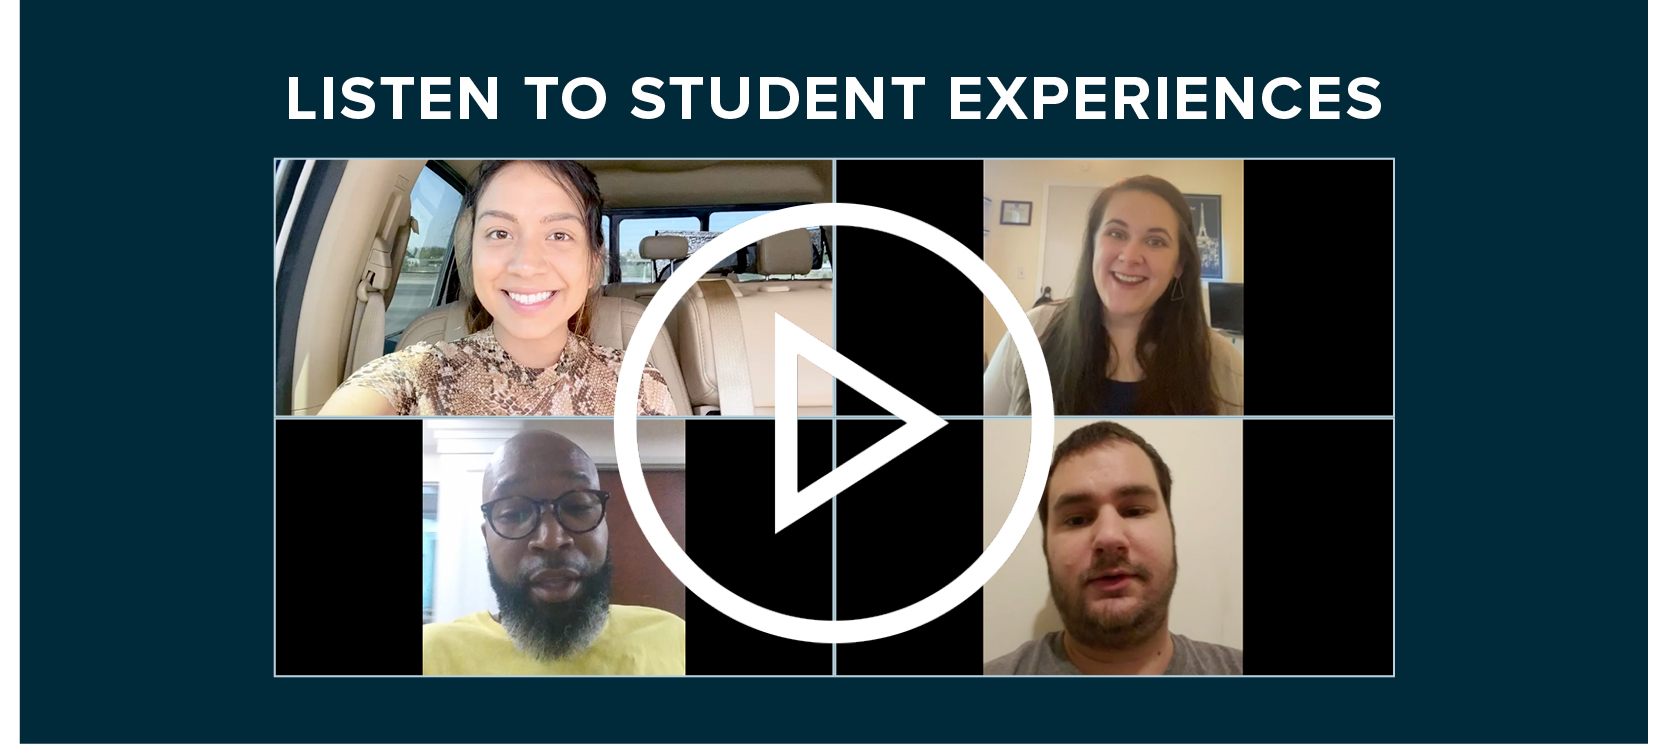 LISTEN TO STUDENT EXPERIENCES